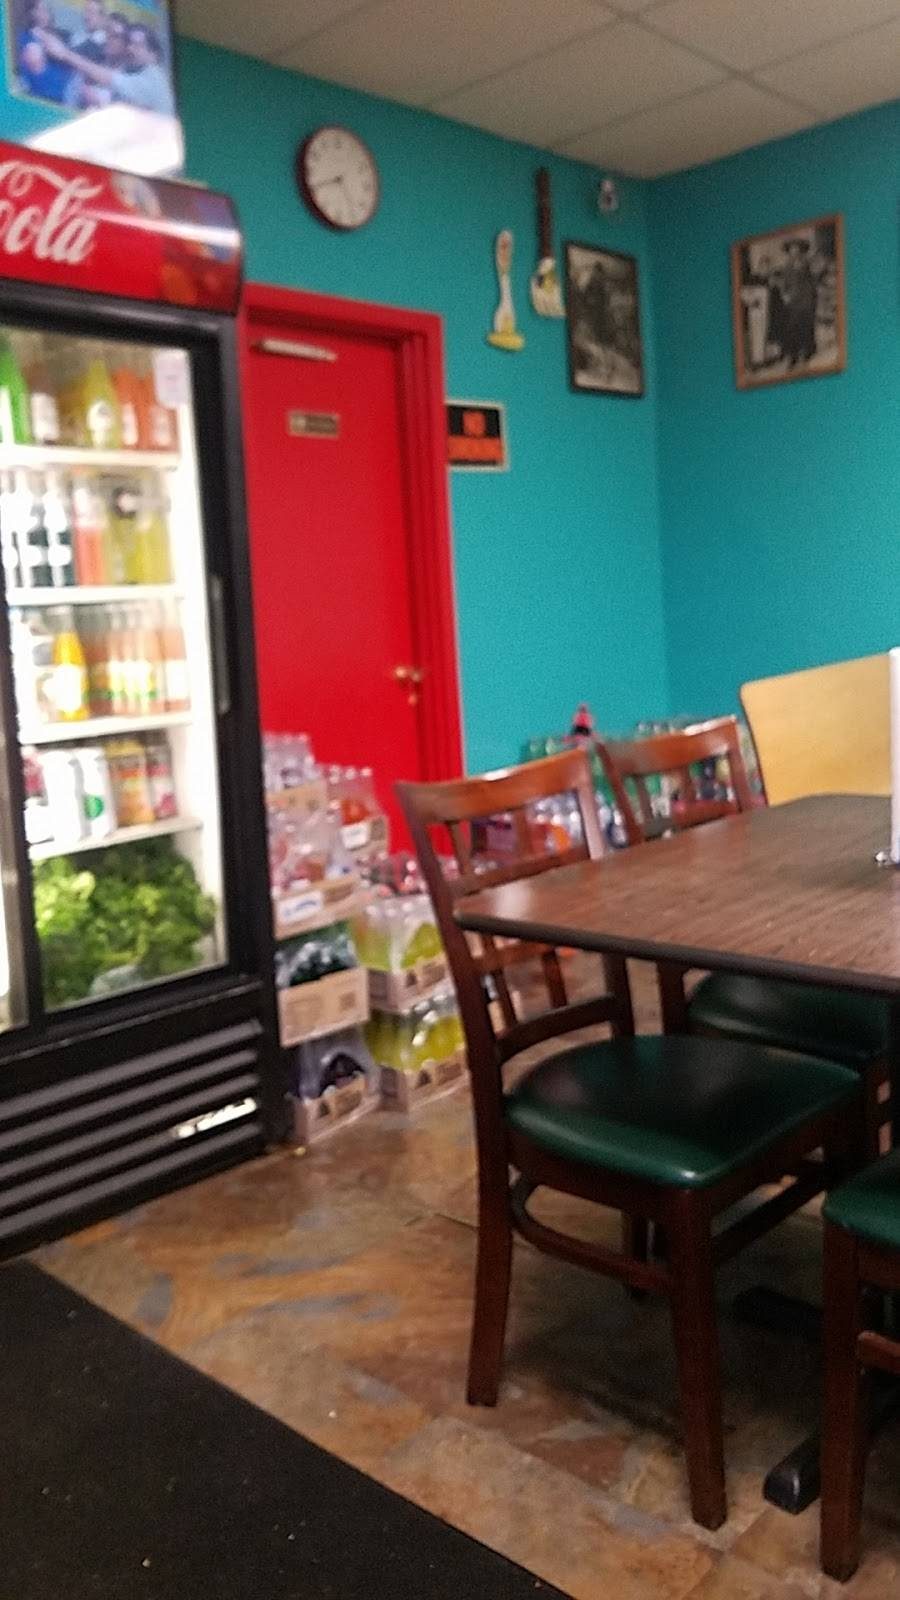 Taqueria Mexico Lindo | restaurant | 500 W Main St, Norristown, PA 19401, USA | 6102796491 OR +1 610-279-6491